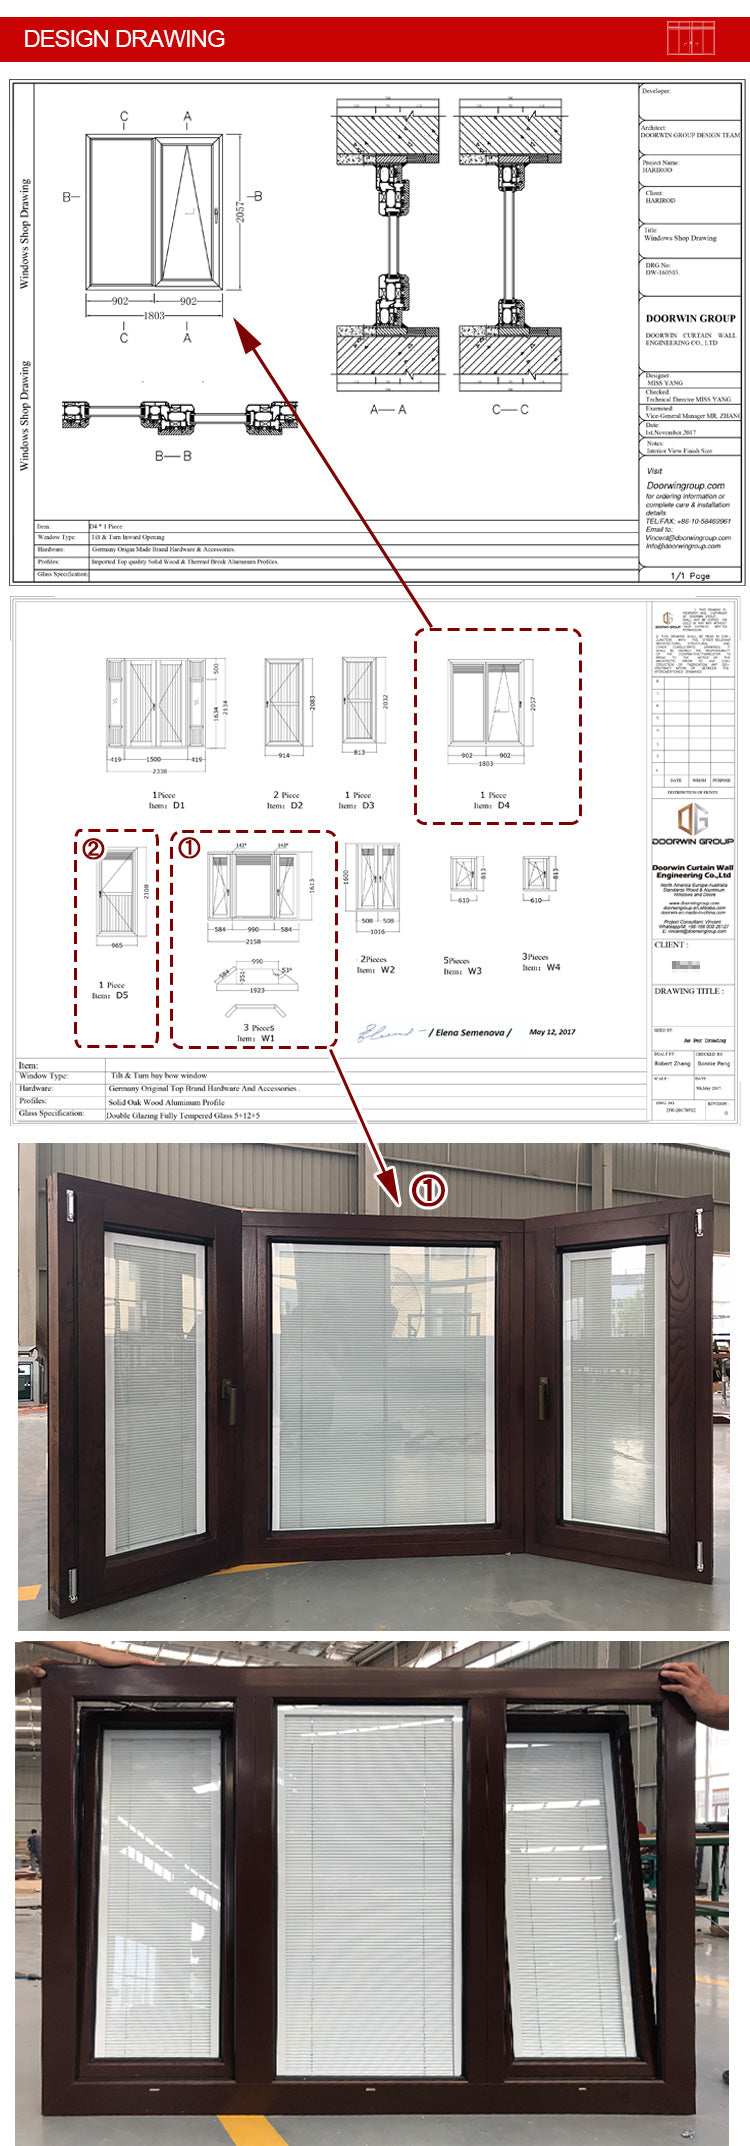 sliding patio door-11-03